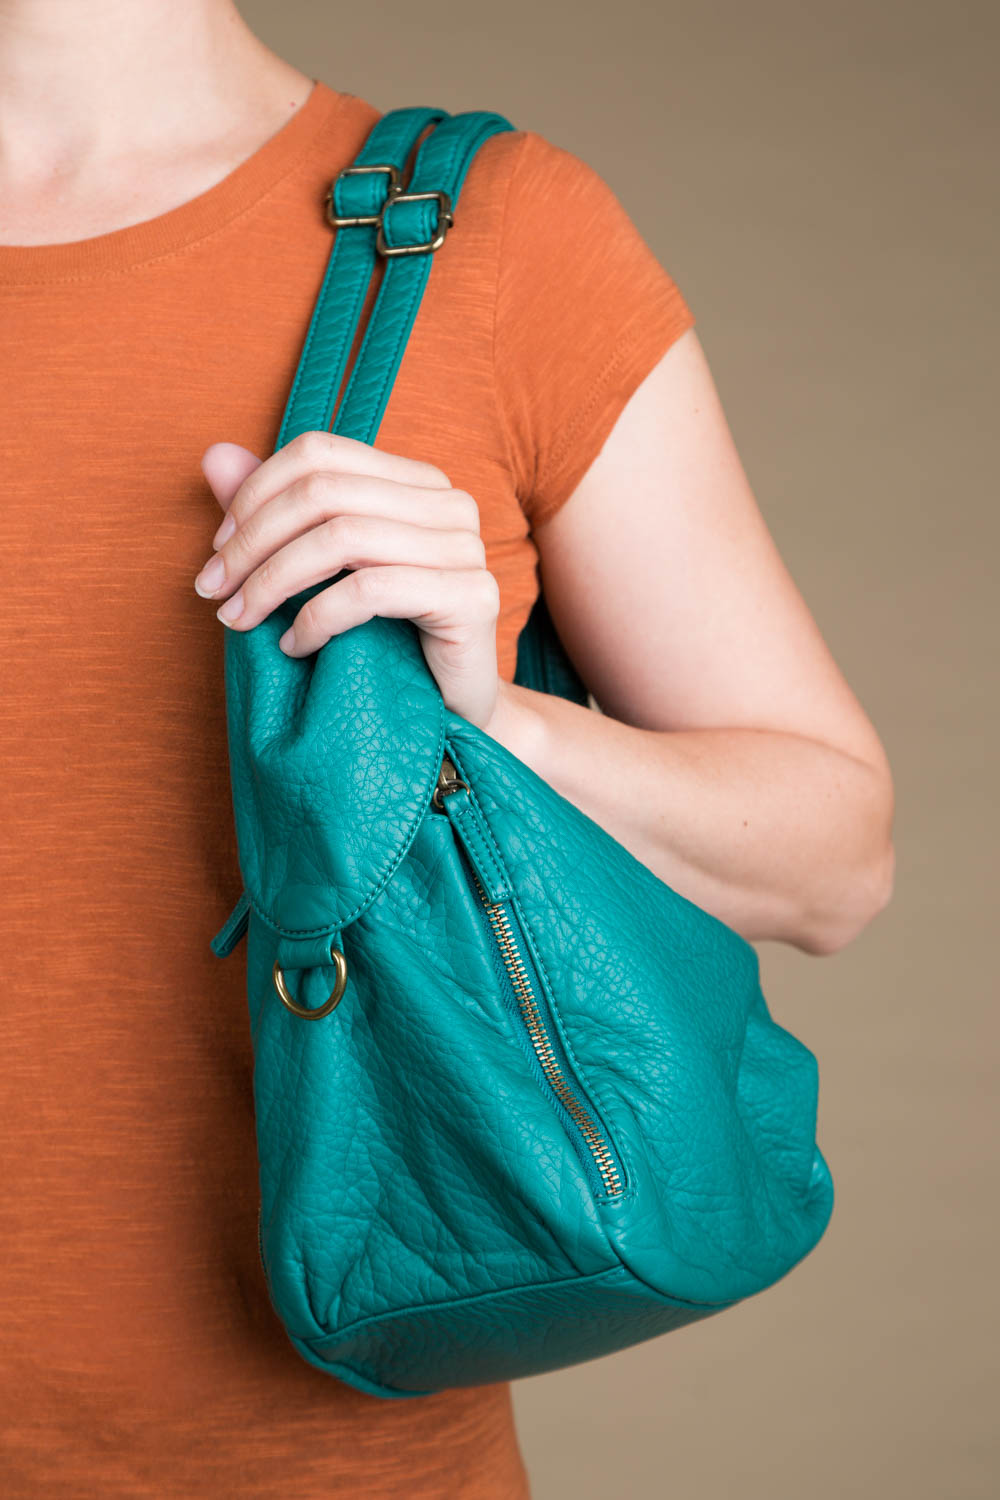 Type 3 Tealicious Bag